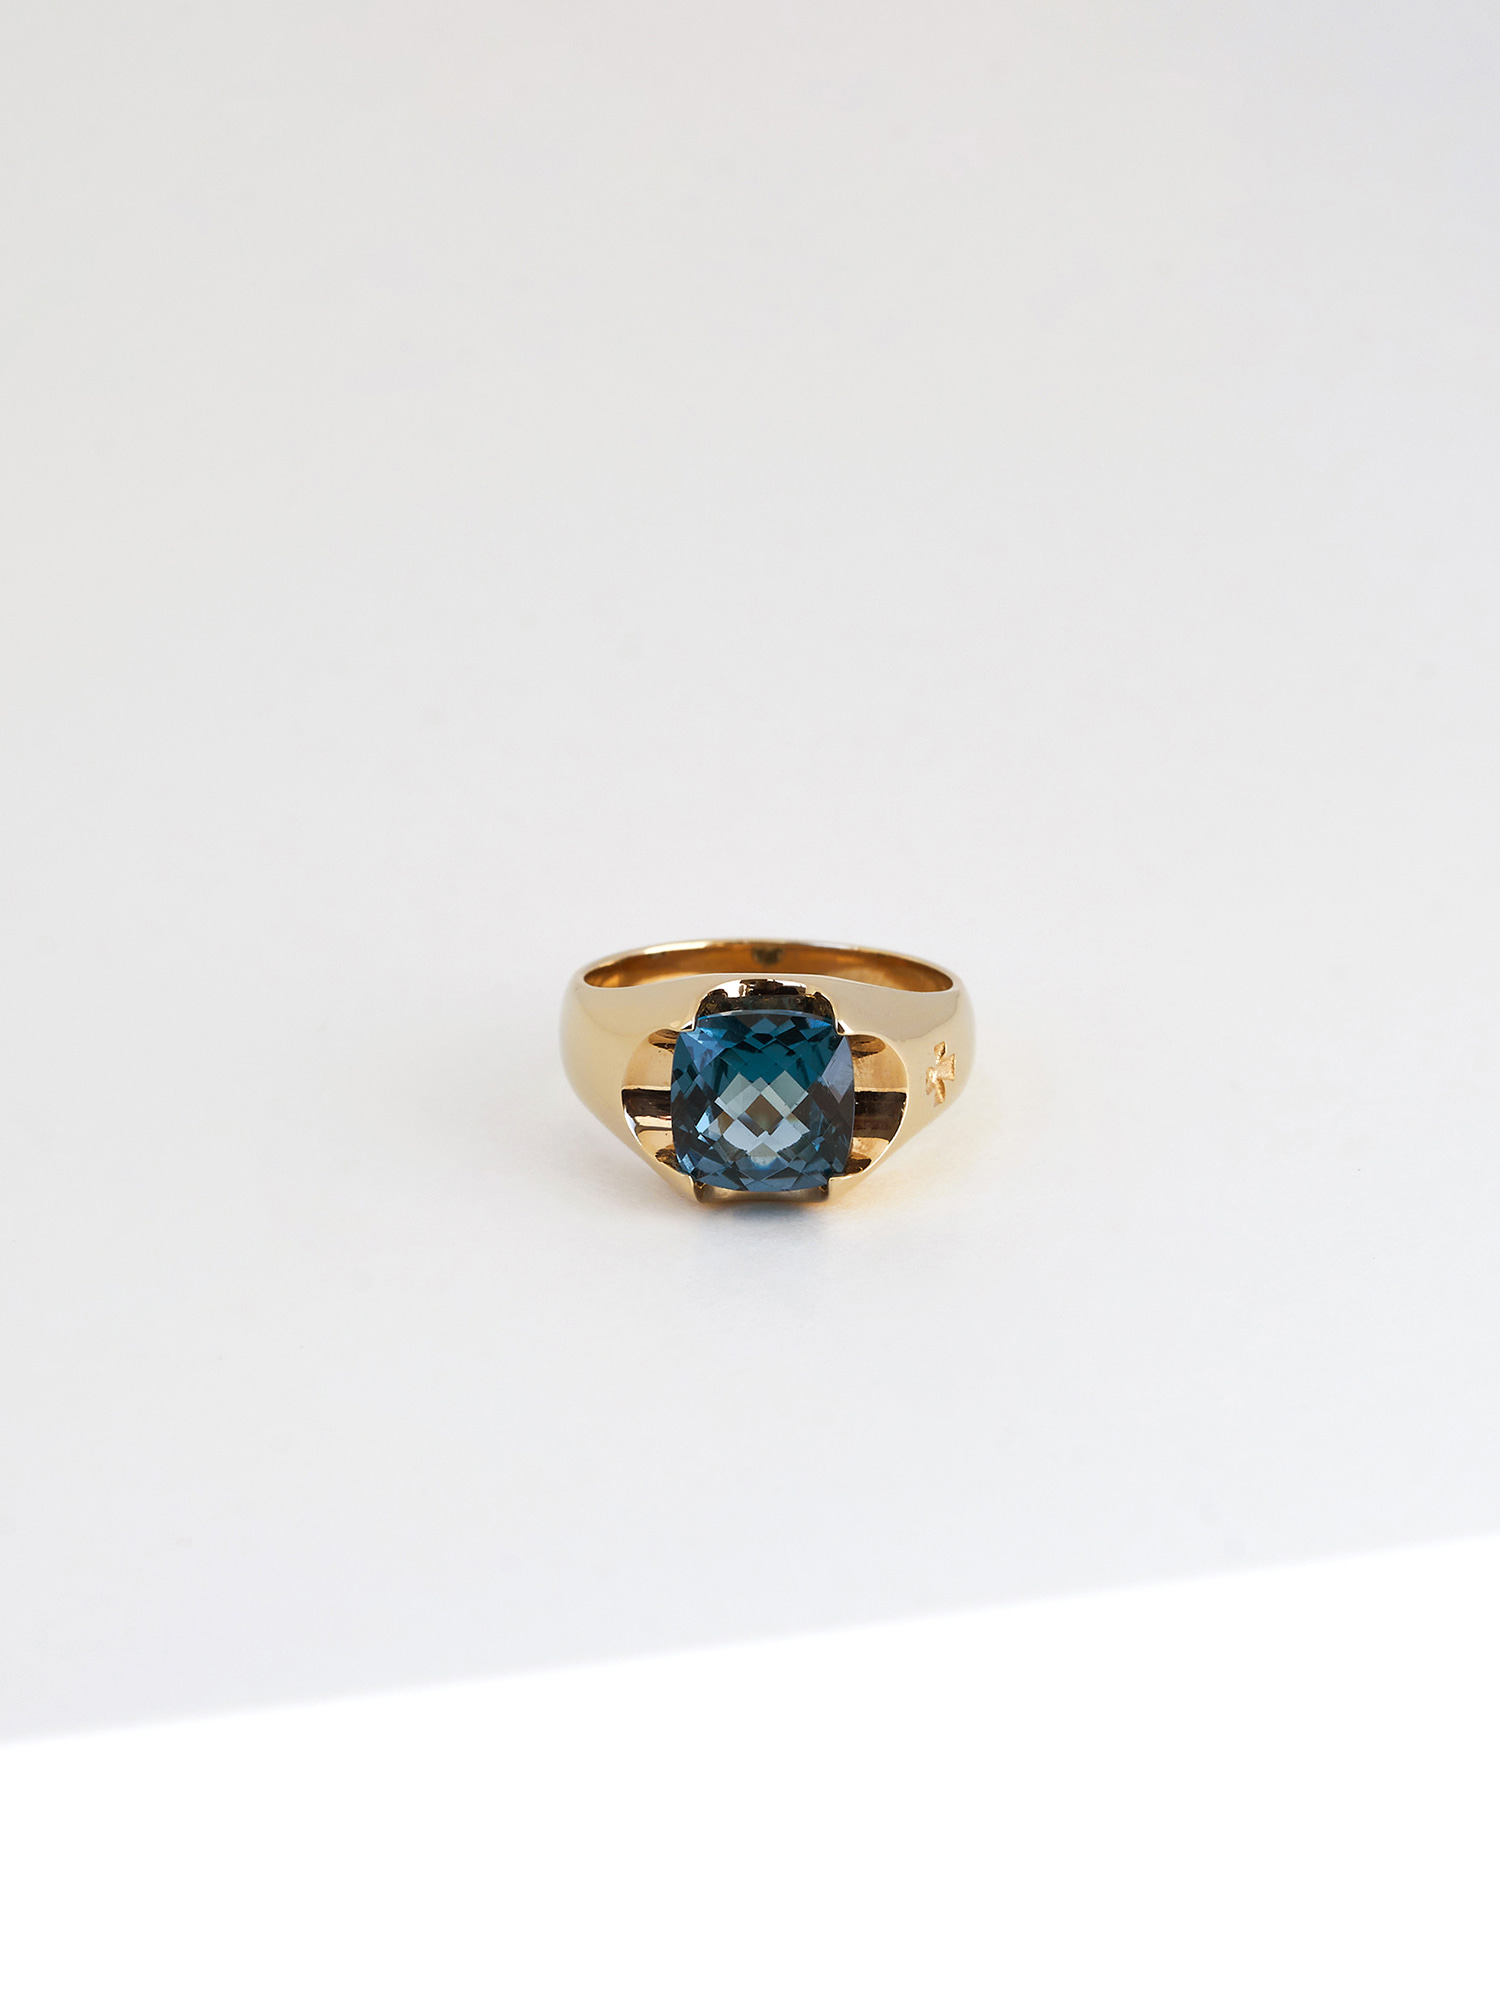 ELE CUSHION GEMSTONE RING GOLD